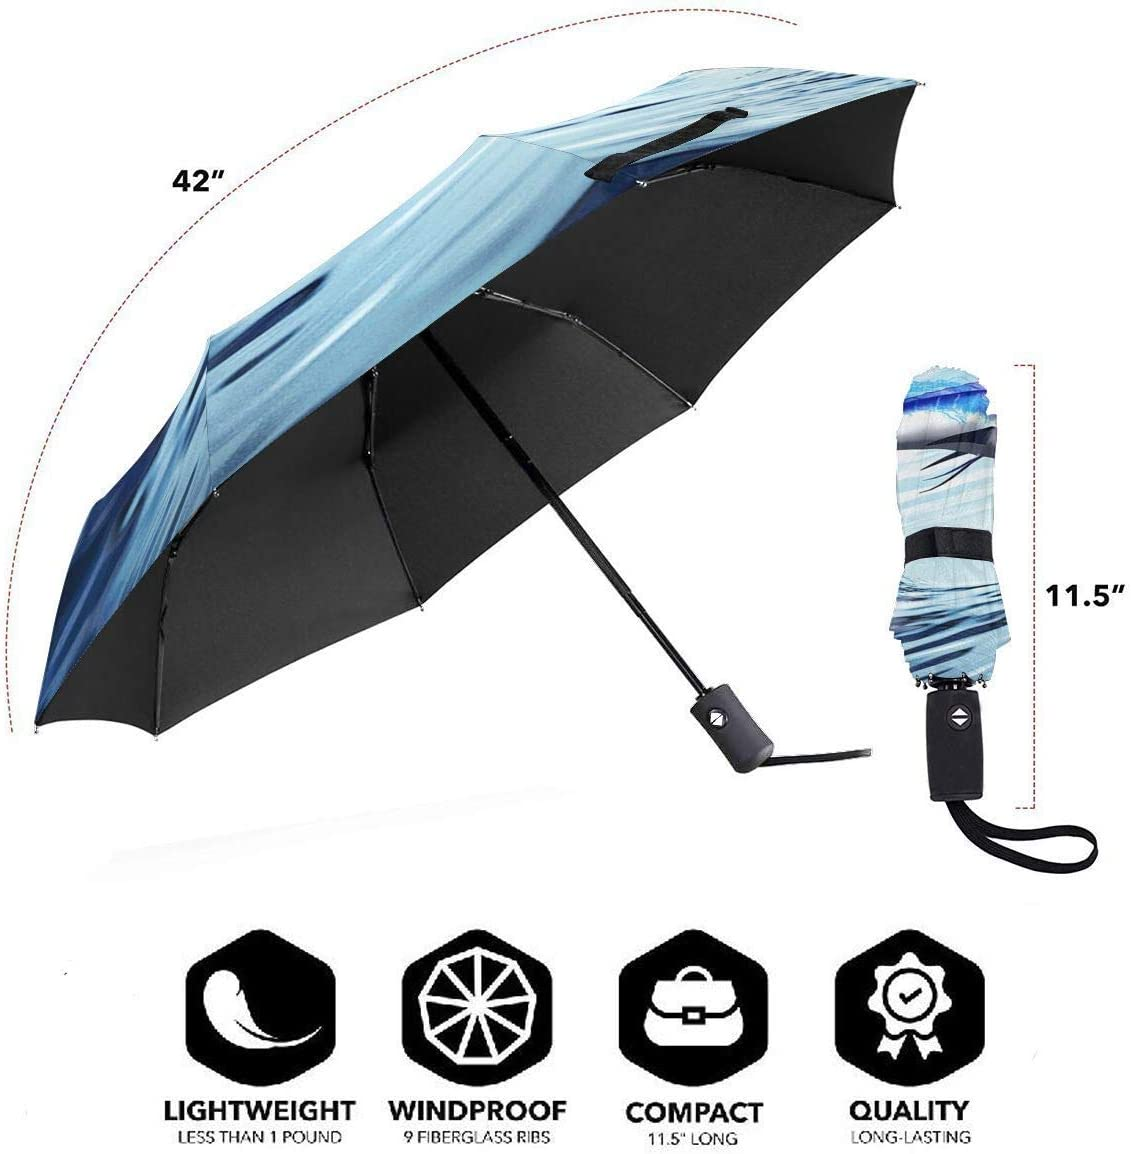 Sailfish Compact Travel Umbrella Rain Umbrella Windproof Lightweight Auto Open//Close Folding Umbrella Rain Repellent Canopy Newly Handle